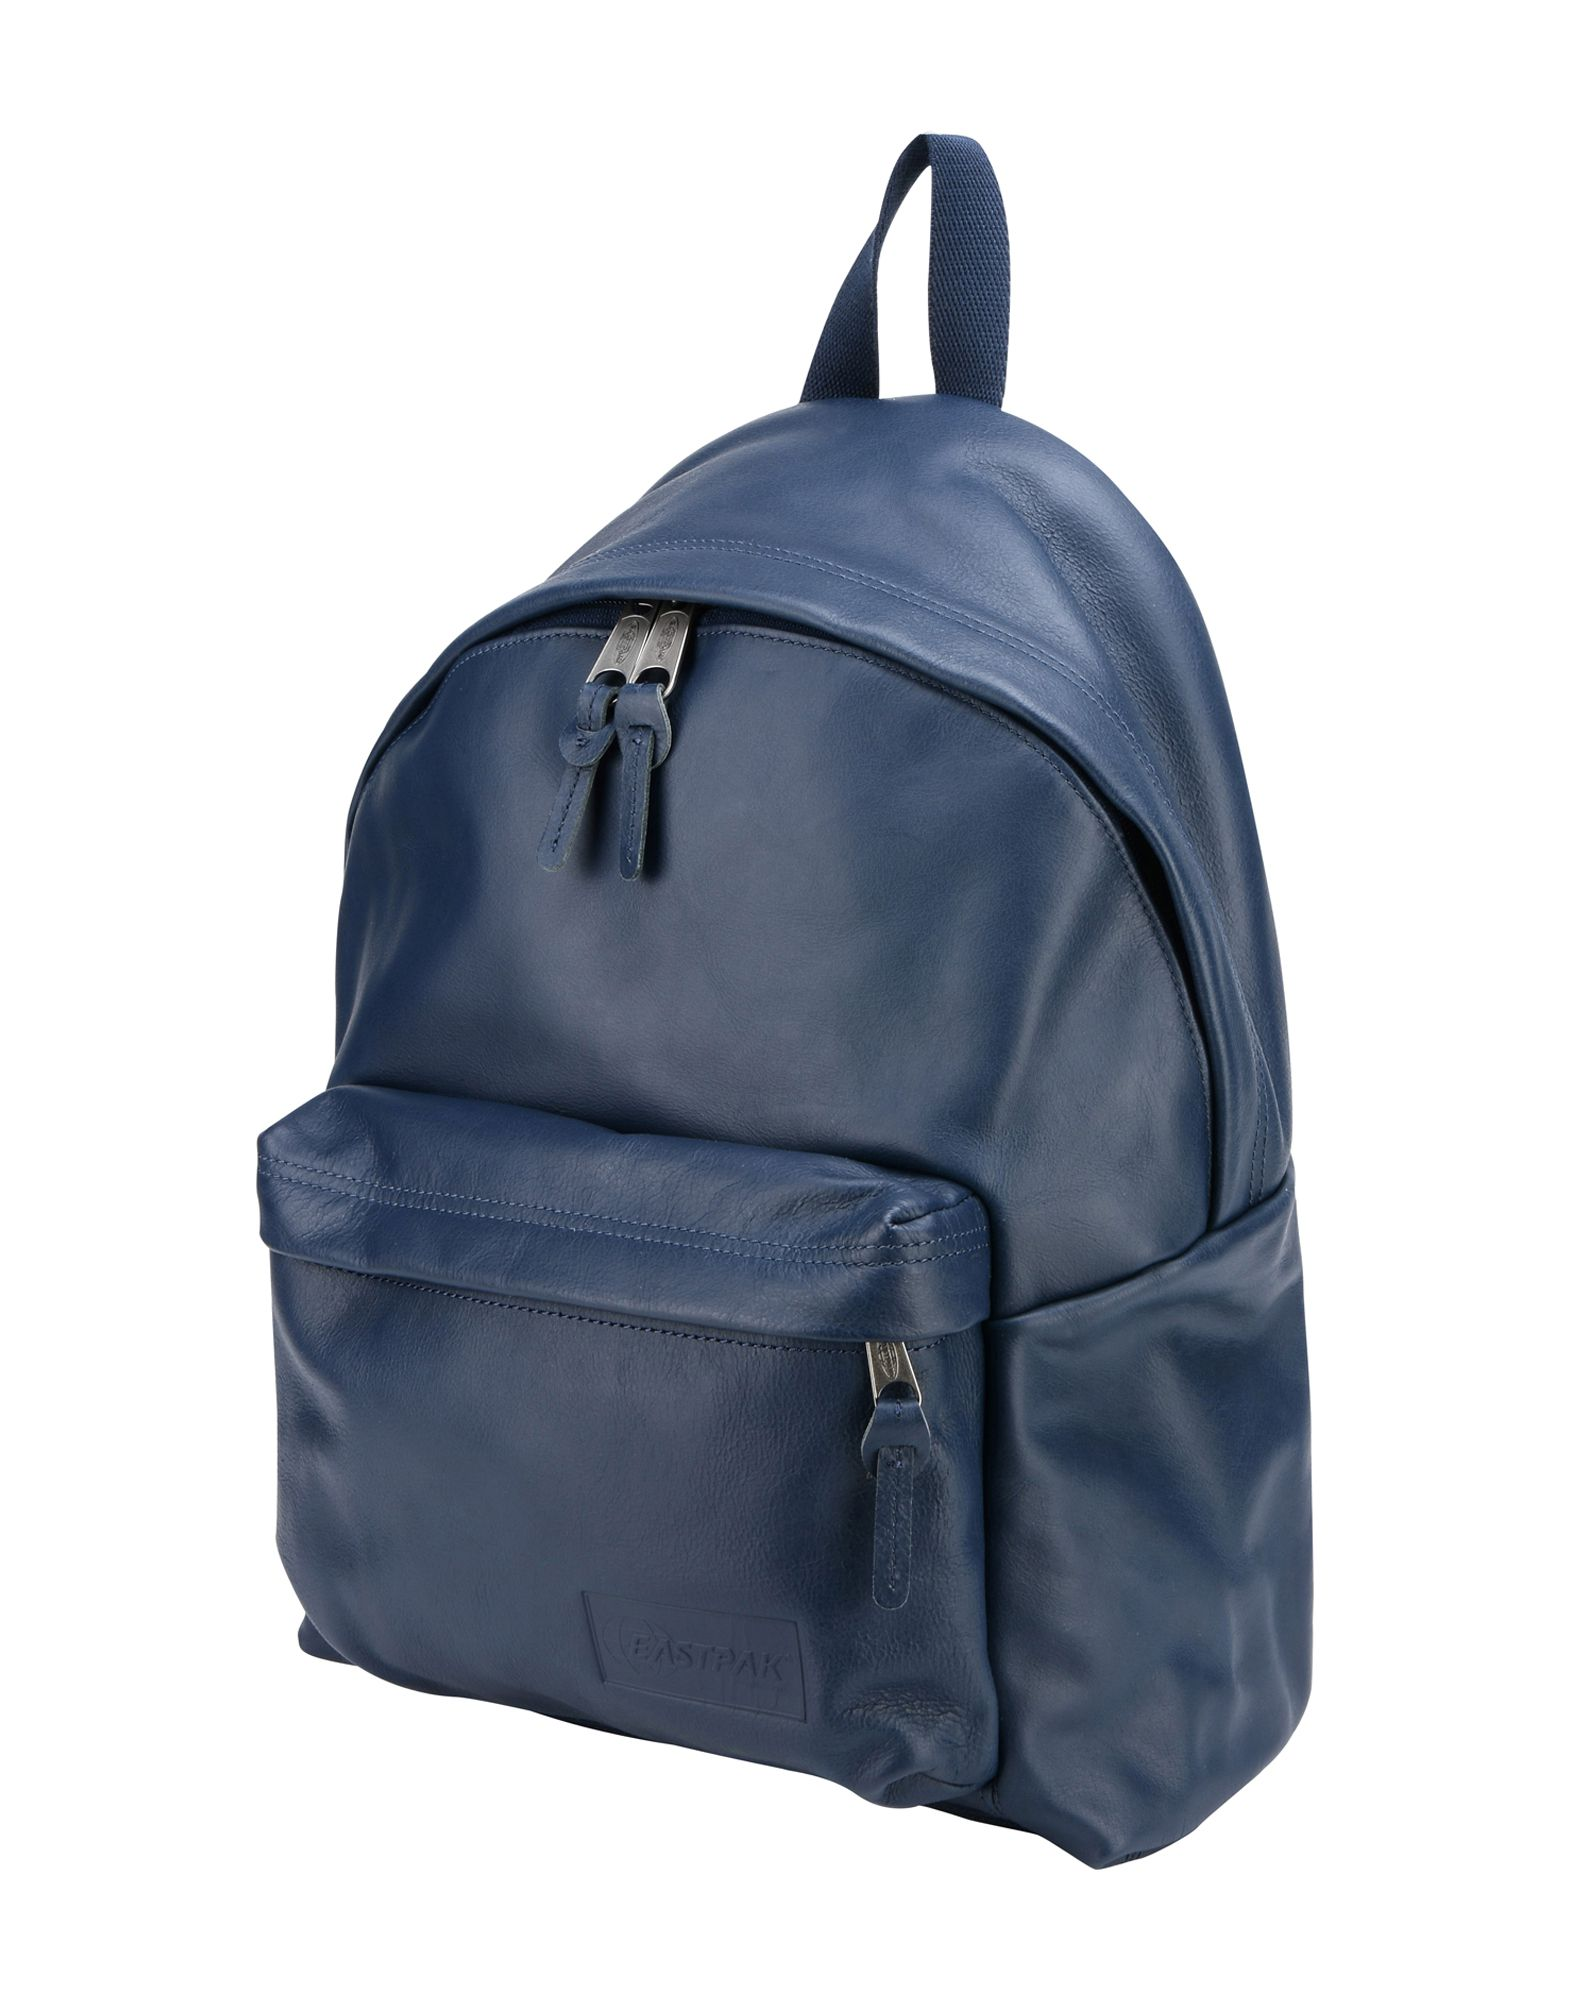 Zaini & Marsupi Eastpak Padded Pakr Navy Leather - Uomo - Acquista online su